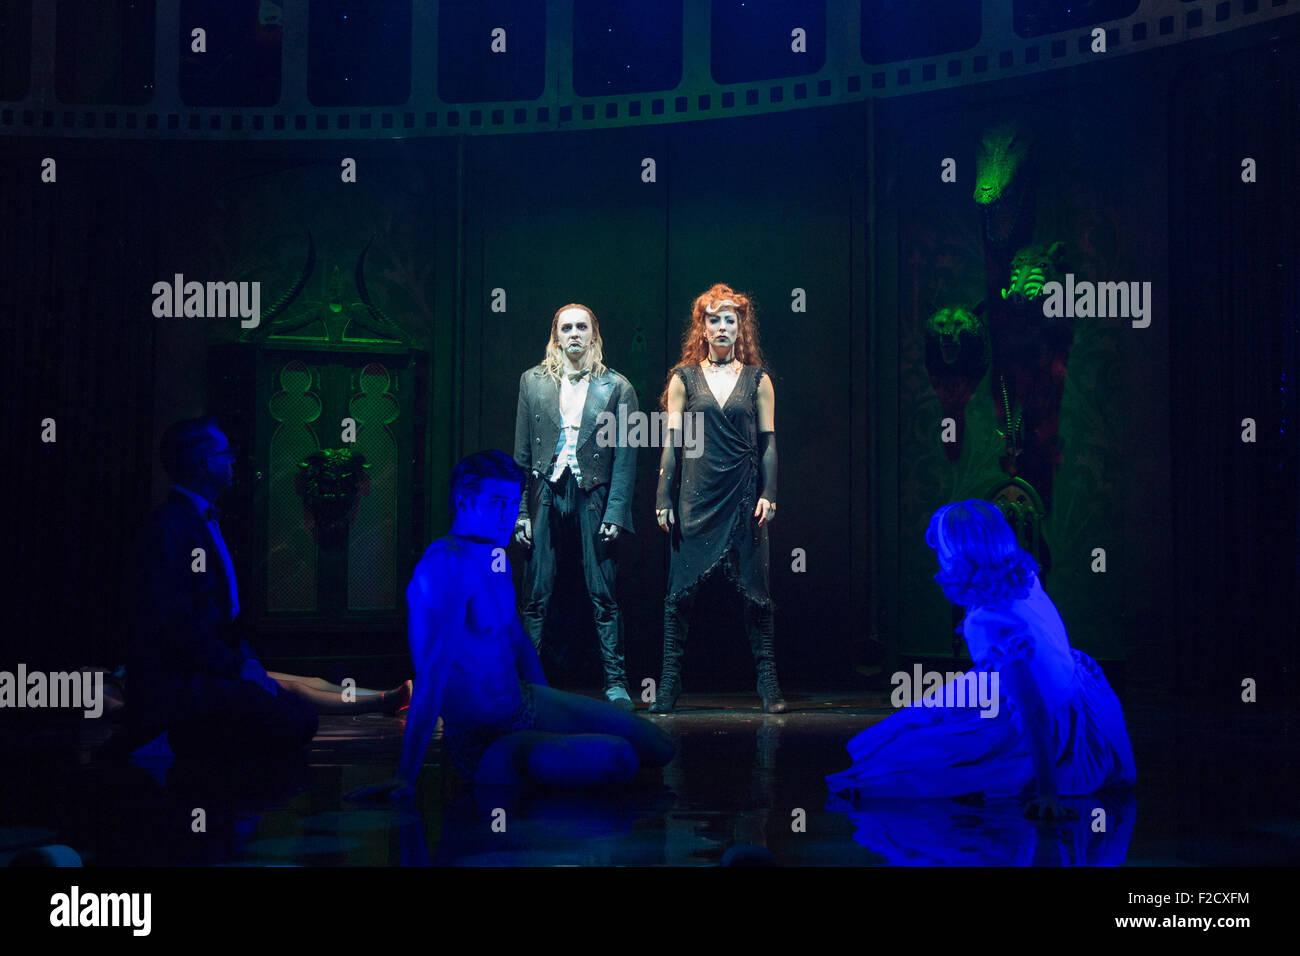 Forster Konfetti Roter Teppich Rocky Horror Show Stage Stockfotos And Rocky Horror Show